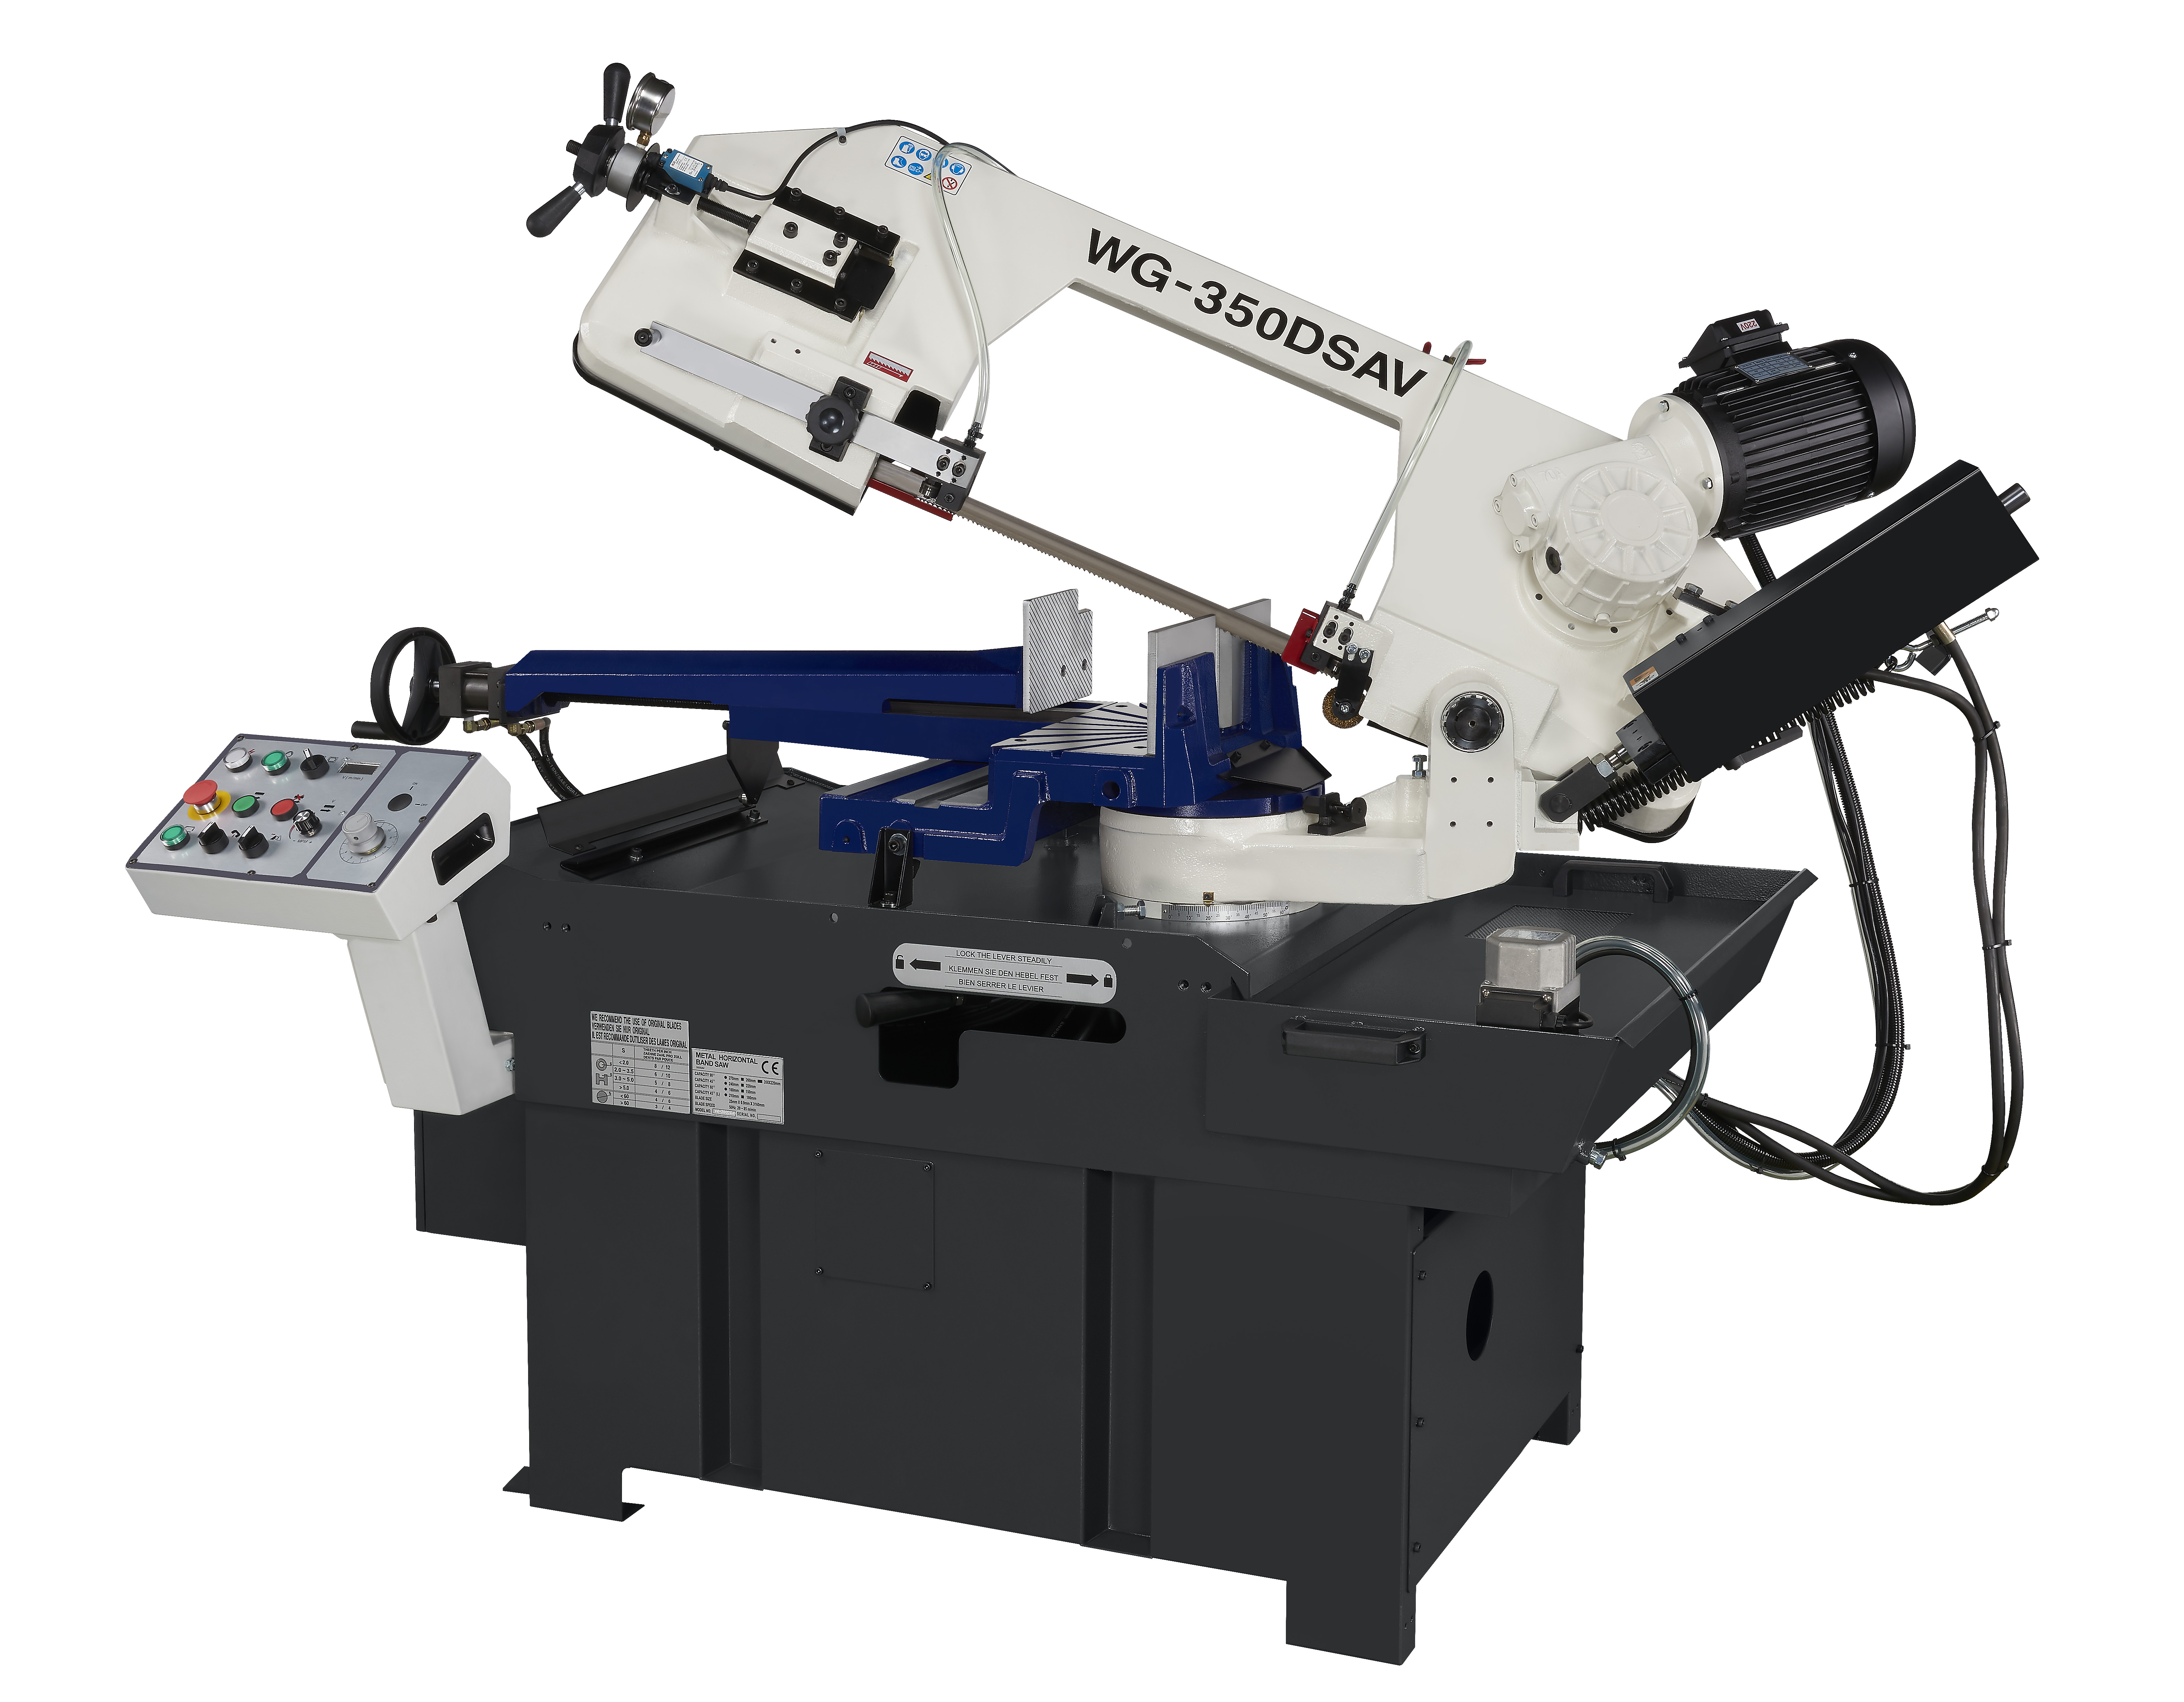 Semi automatical horizonal band saw